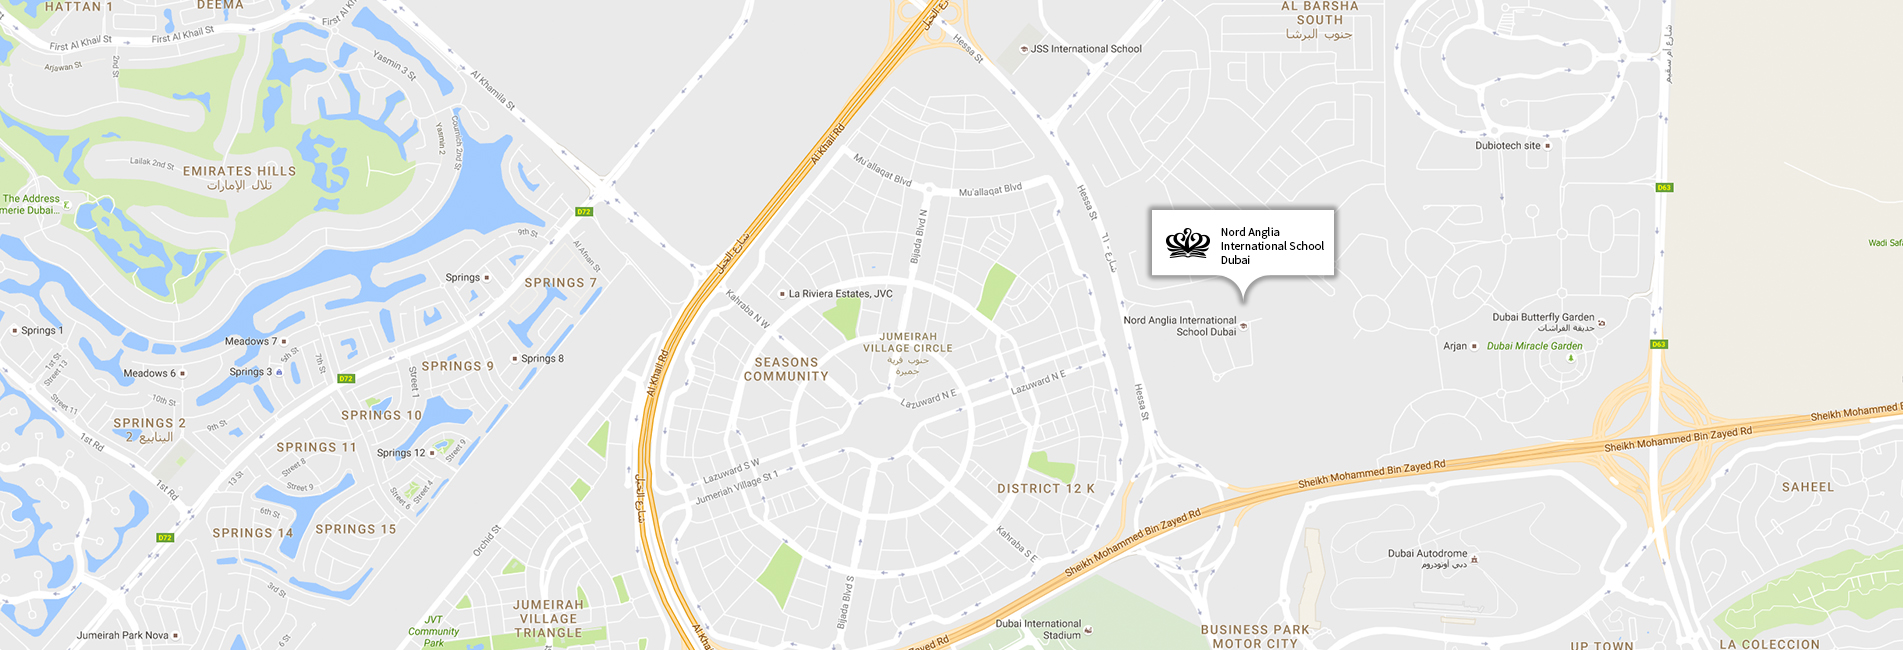 Nord Anglia International School Dubai Map Location